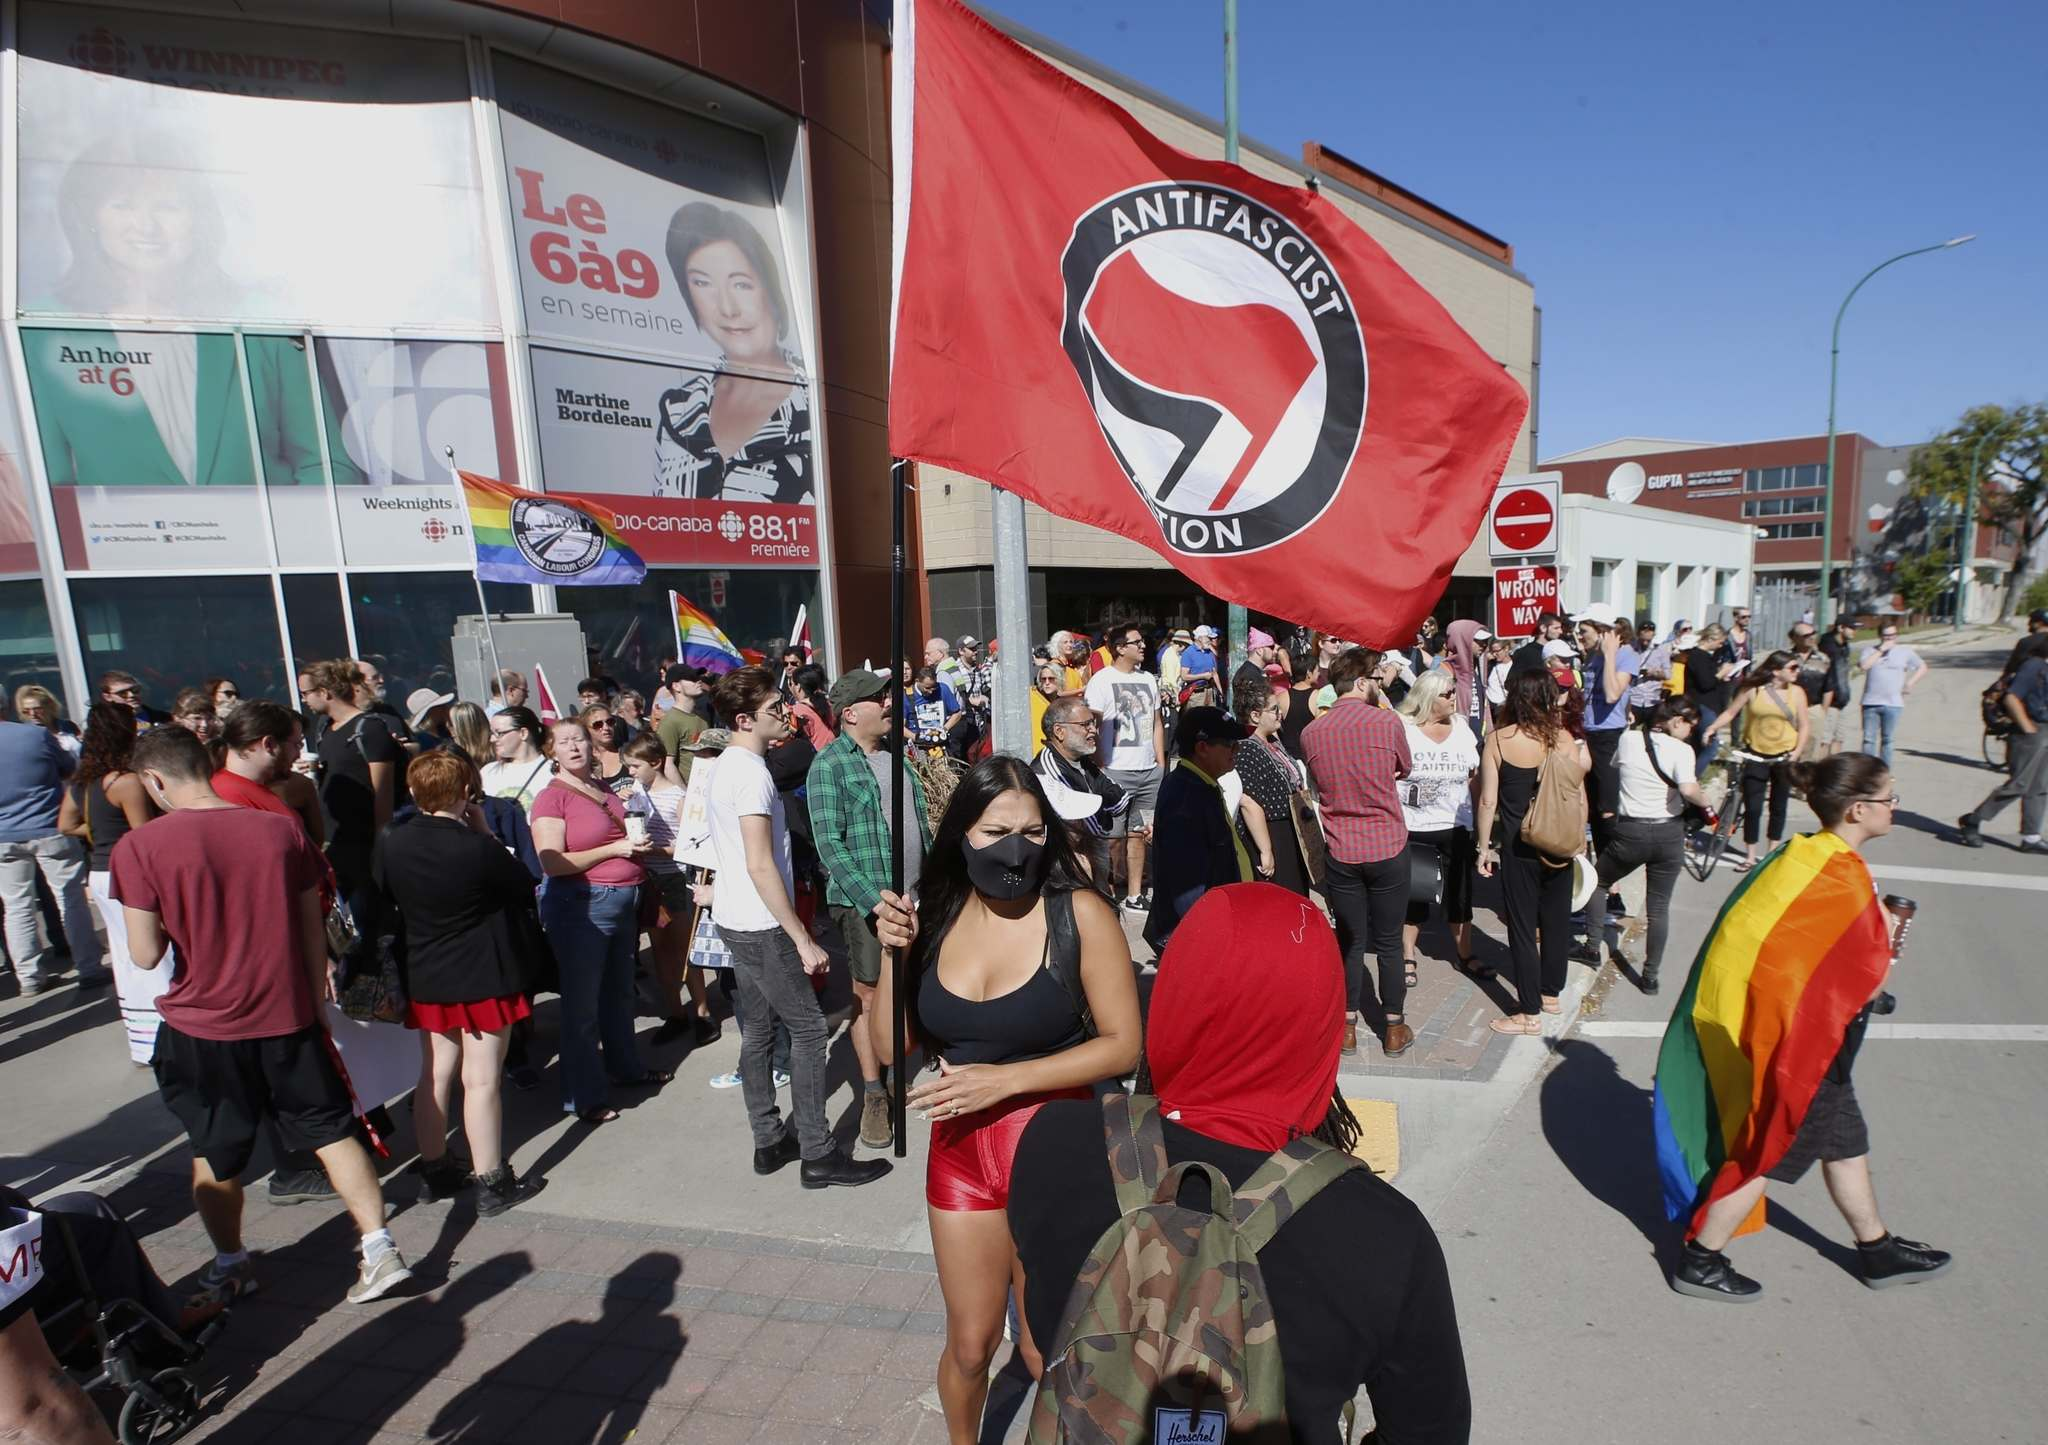 Wayne Glowacki / Winnipeg Free Press</p><p>About 200 anti-fascist demonstrators gather in front of the CBC building on Portage Avenue Saturday morning before marching to the Legislative ground.</p>